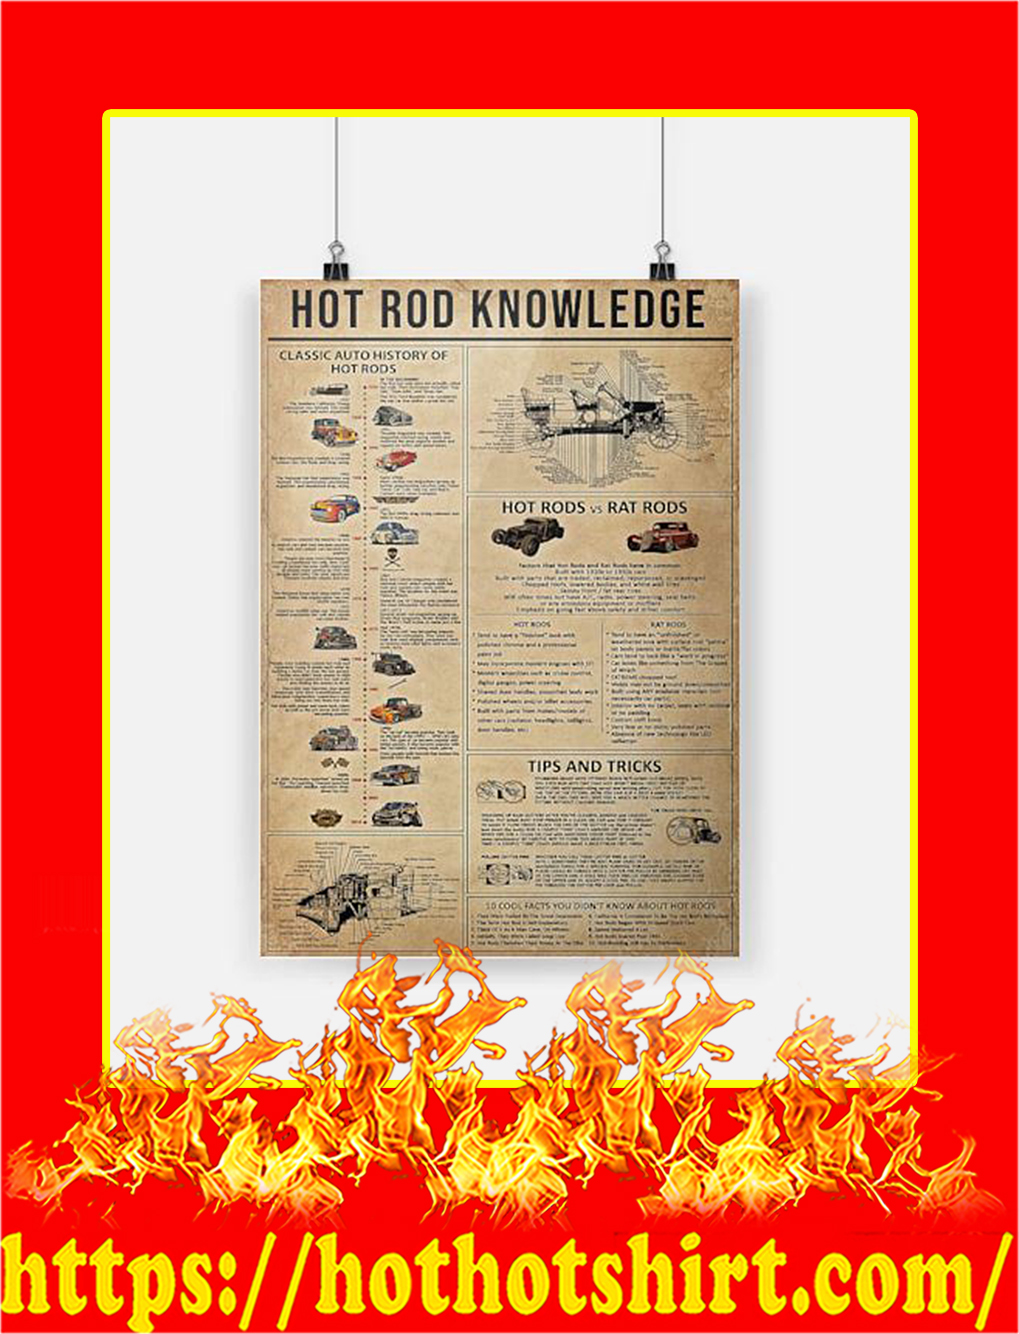 Hot rod knowledge Poster - A4